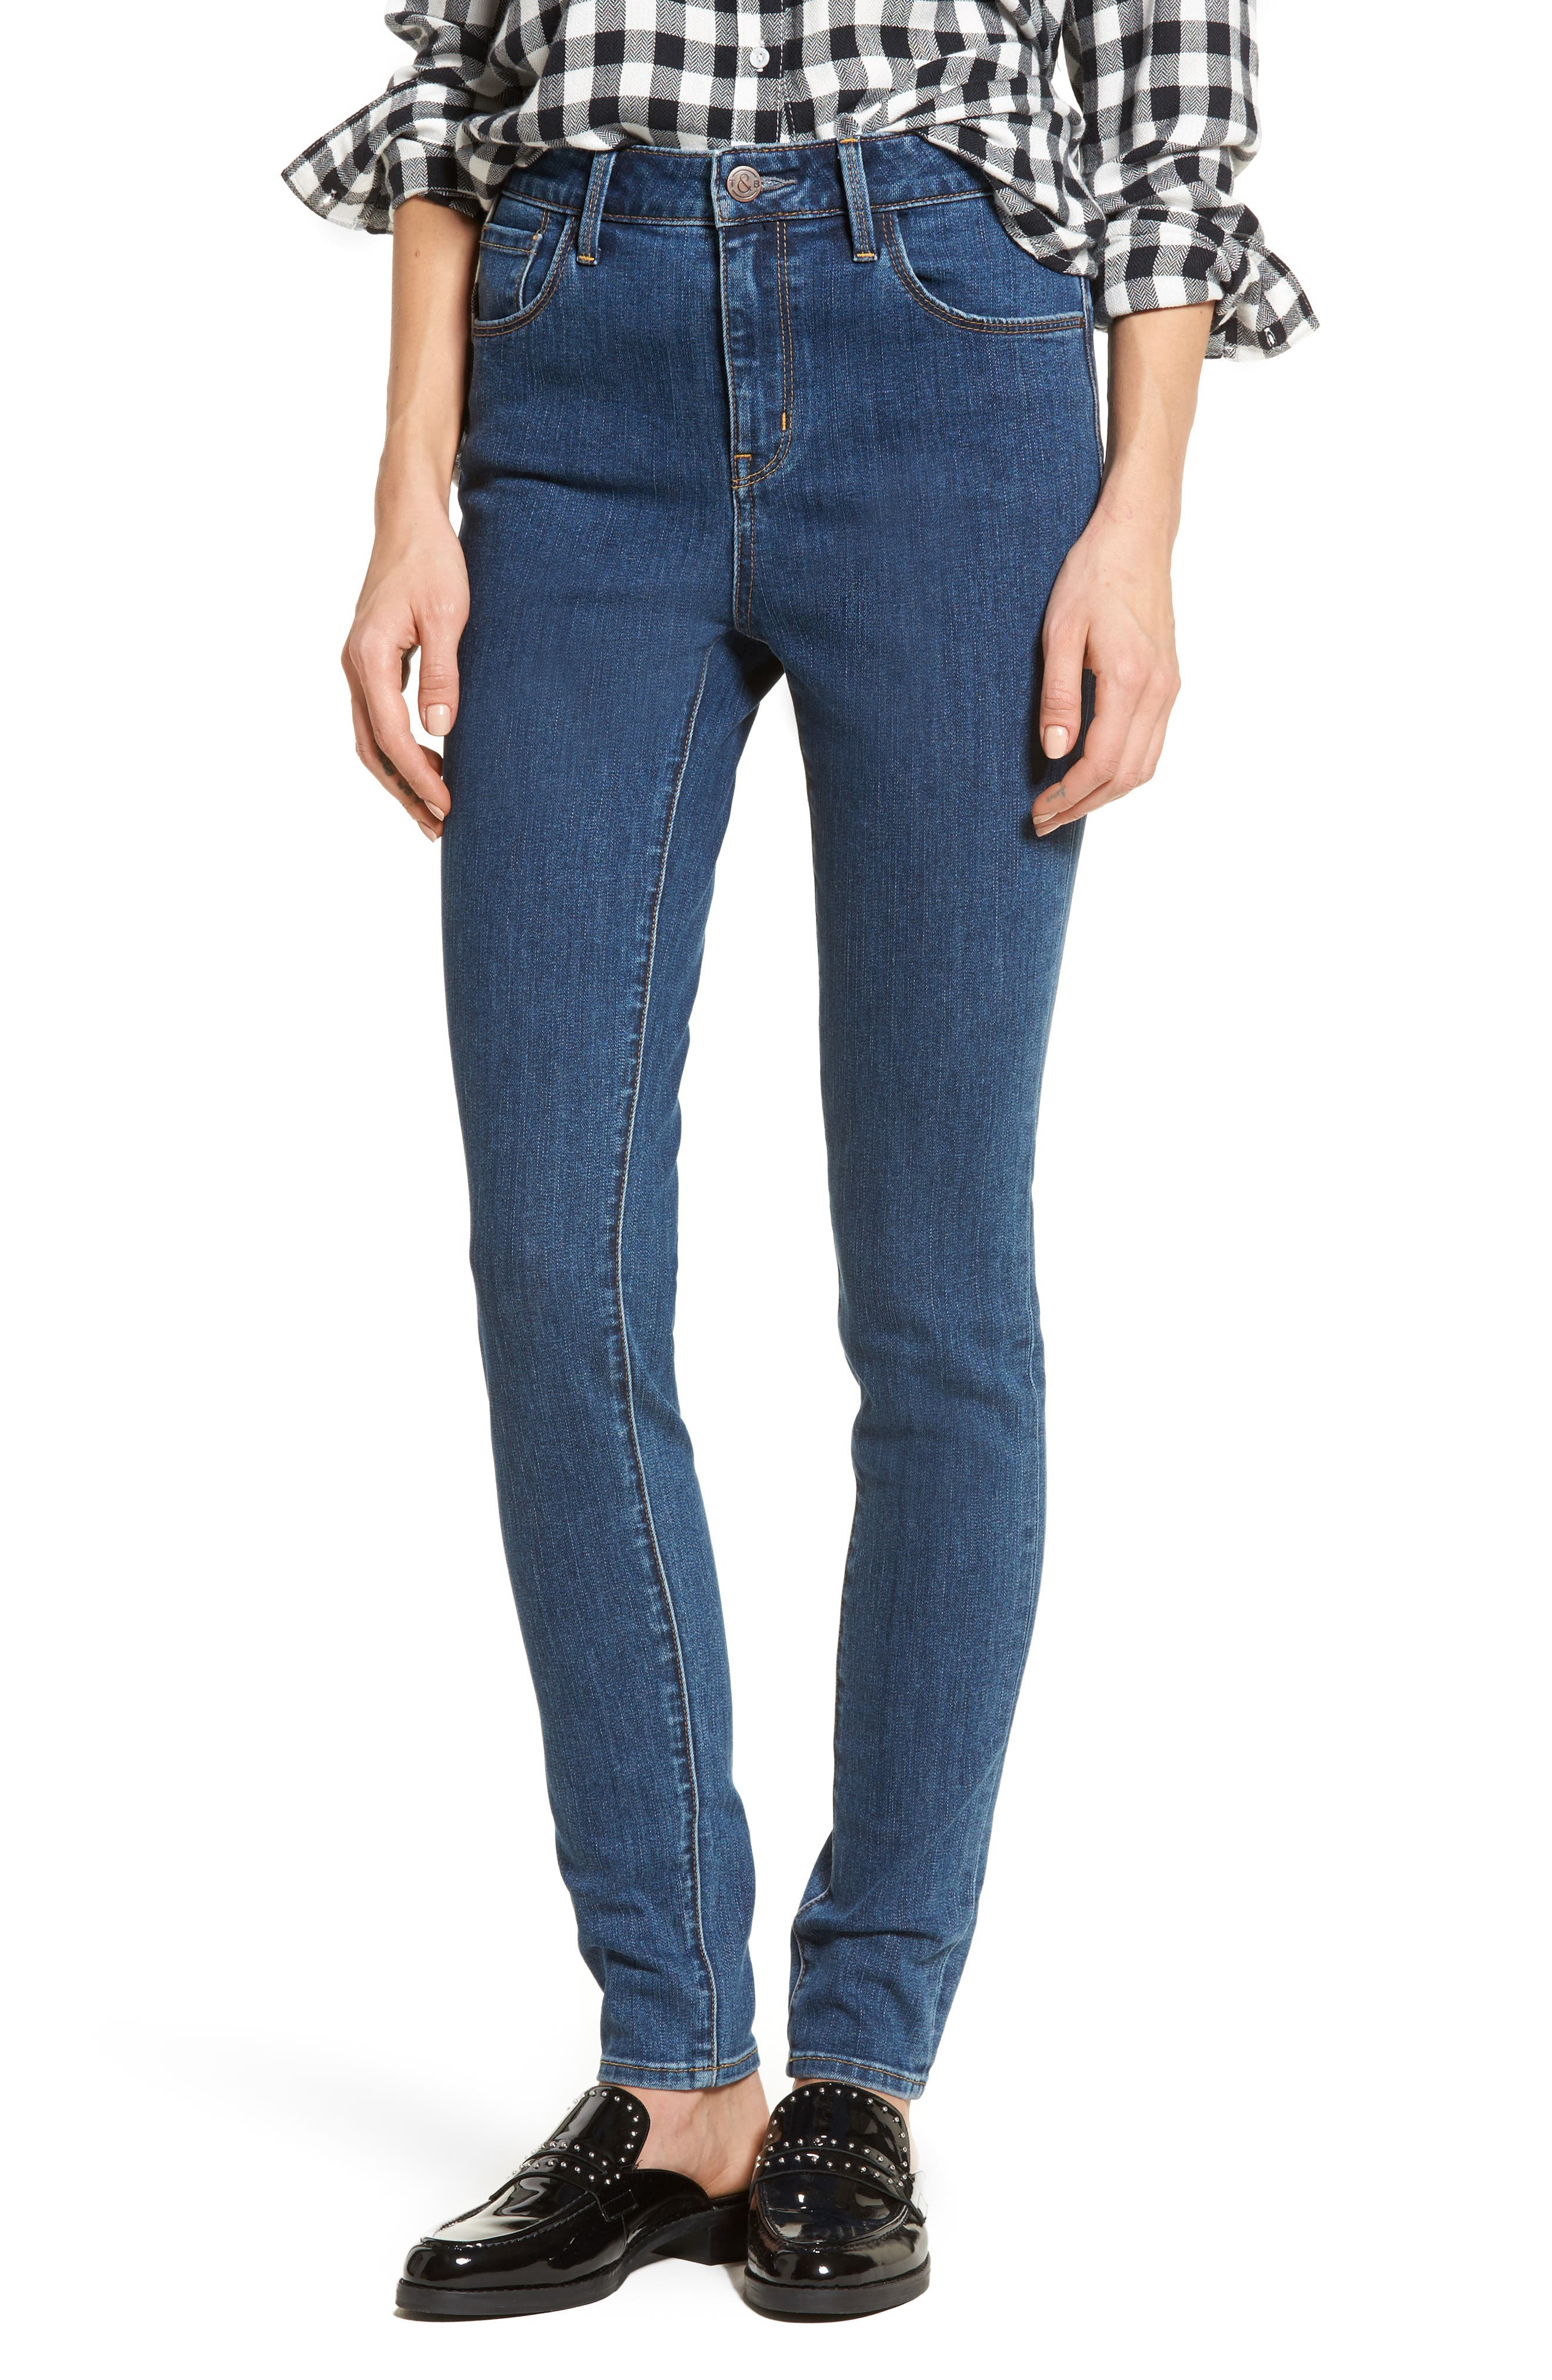 Charity High Waist Skinny Jeans,                         Main,                         color,